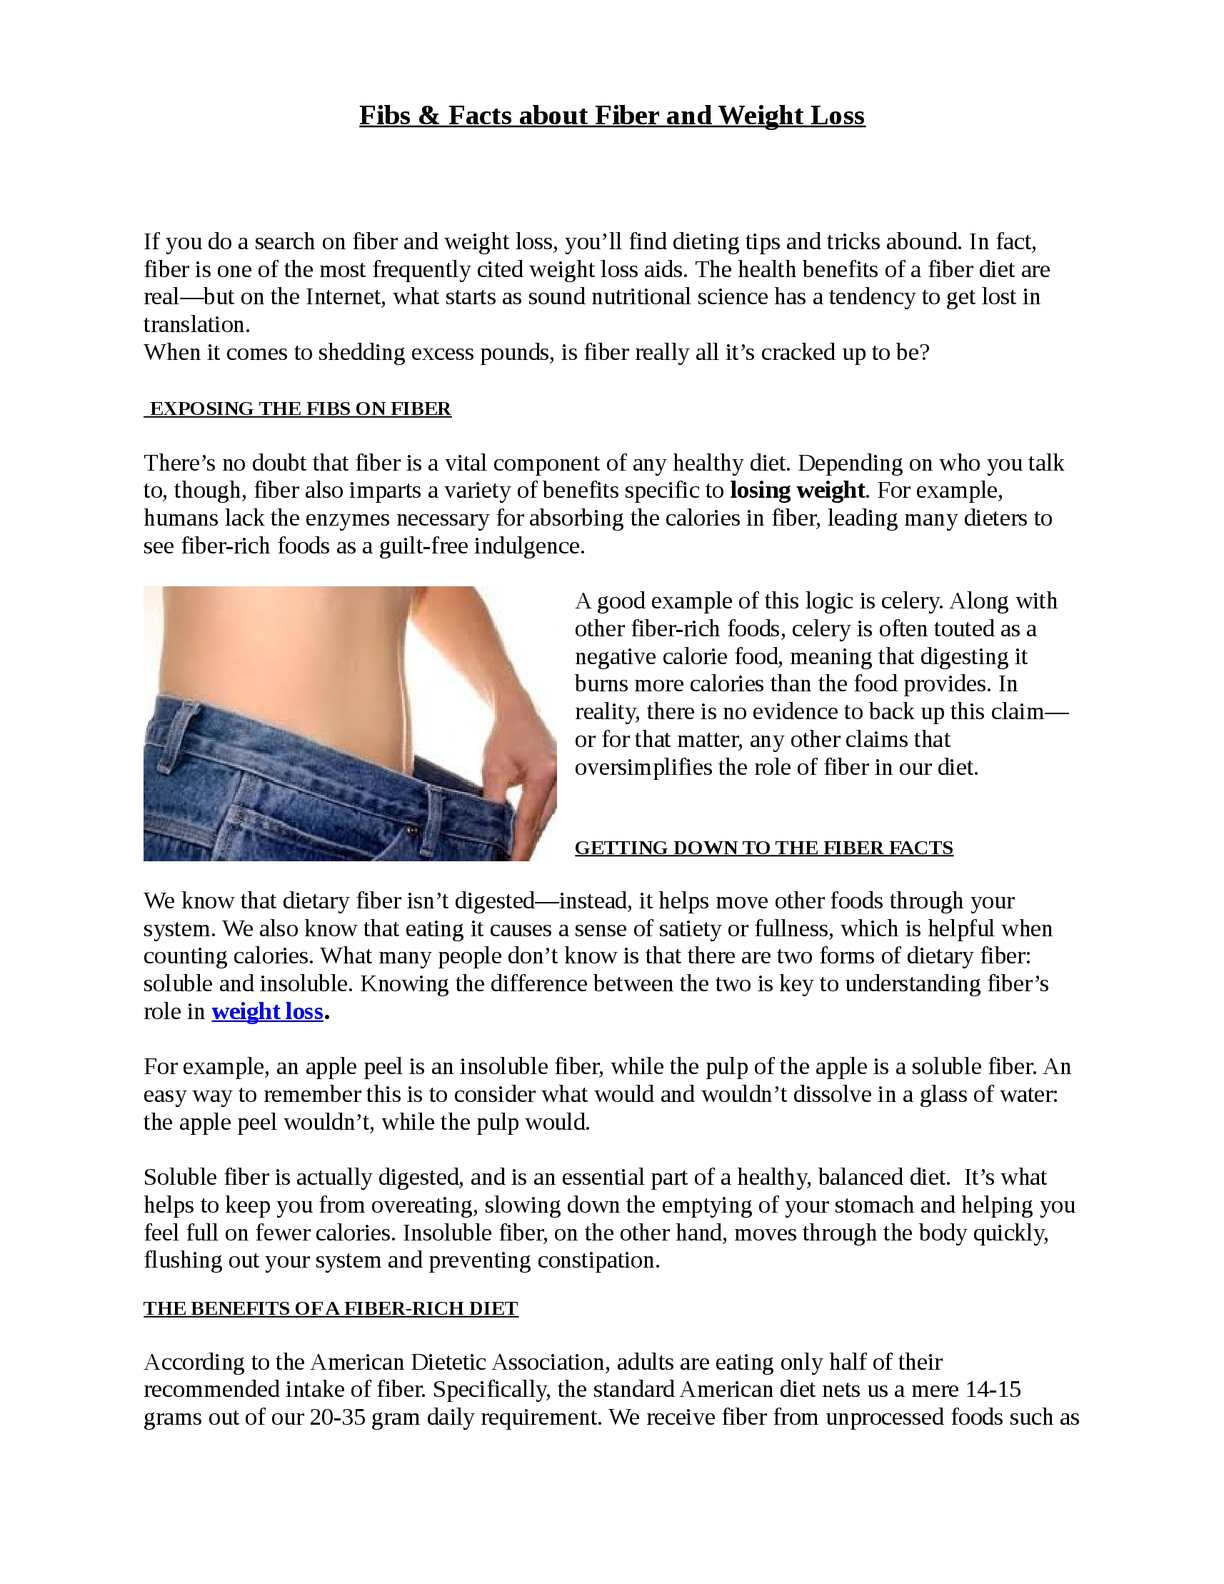 Calameo Fibs Facts About Fiber And Weight Loss